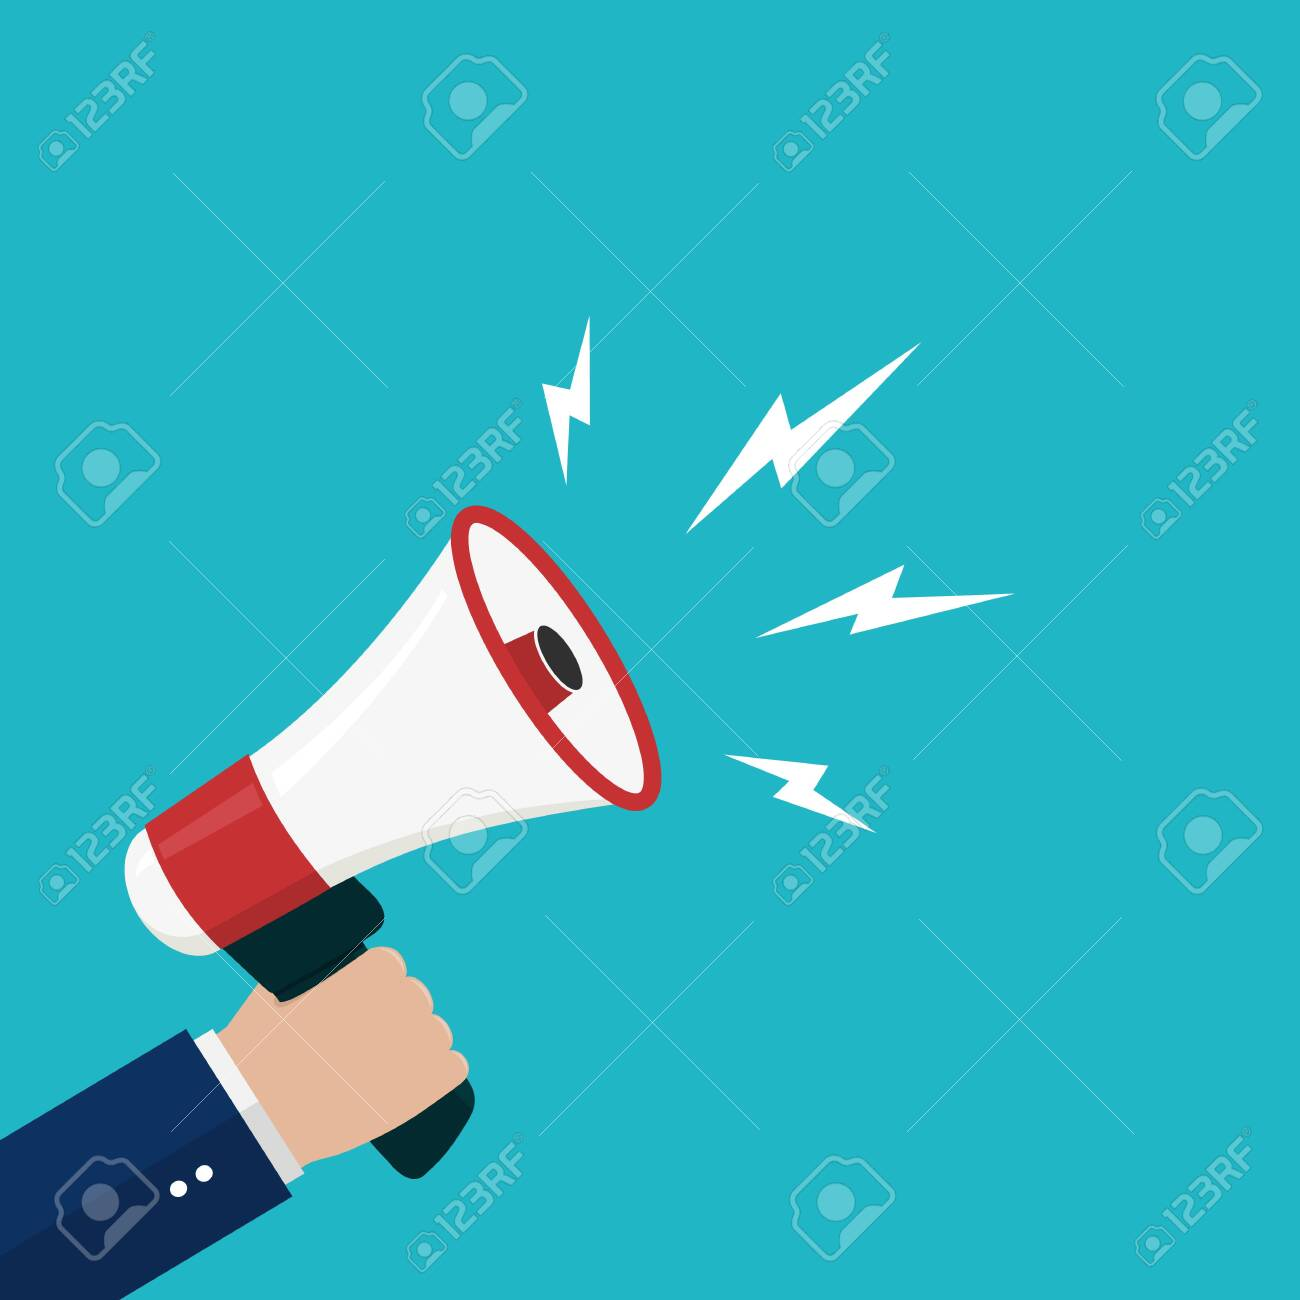 cartoon hand holding loudspeaker loud voice horn megaphone flat royalty free cliparts vectors and stock illustration image 133066873 cartoon hand holding loudspeaker loud voice horn megaphone flat